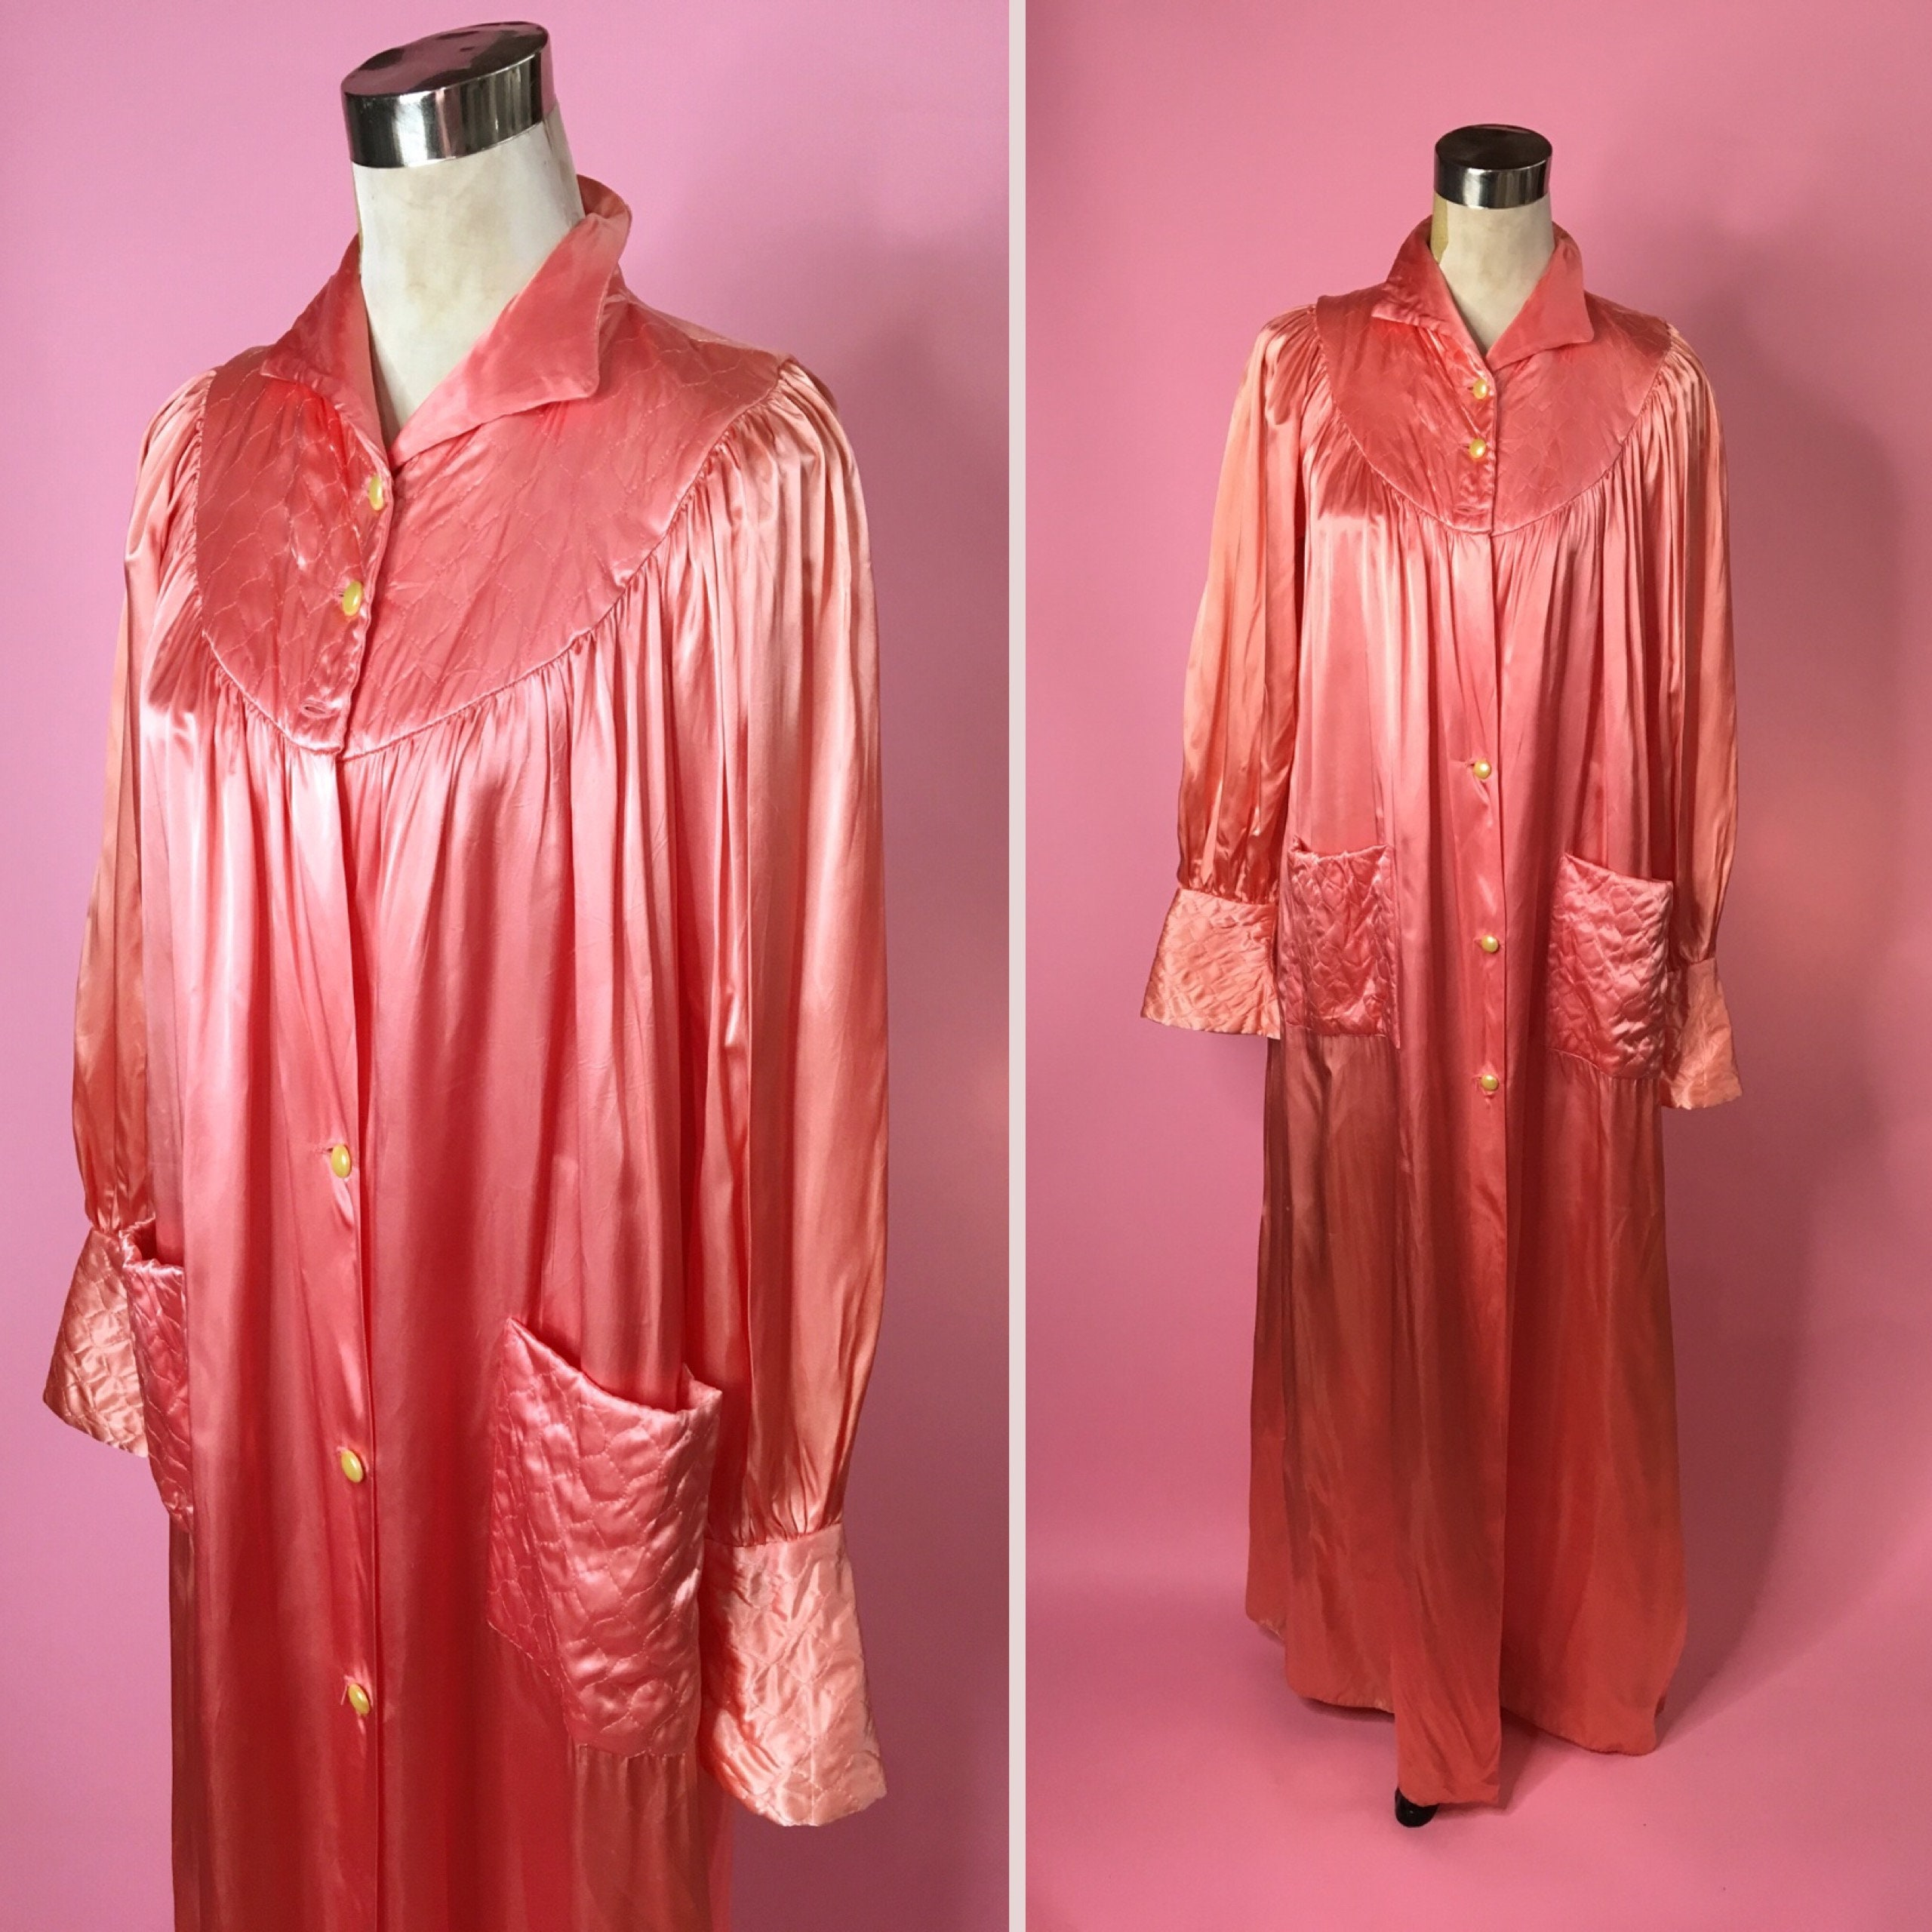 1940s Dressing Gown: 1940s 50s Satin Quilted Salmon Pink Dressing Gown Vintage